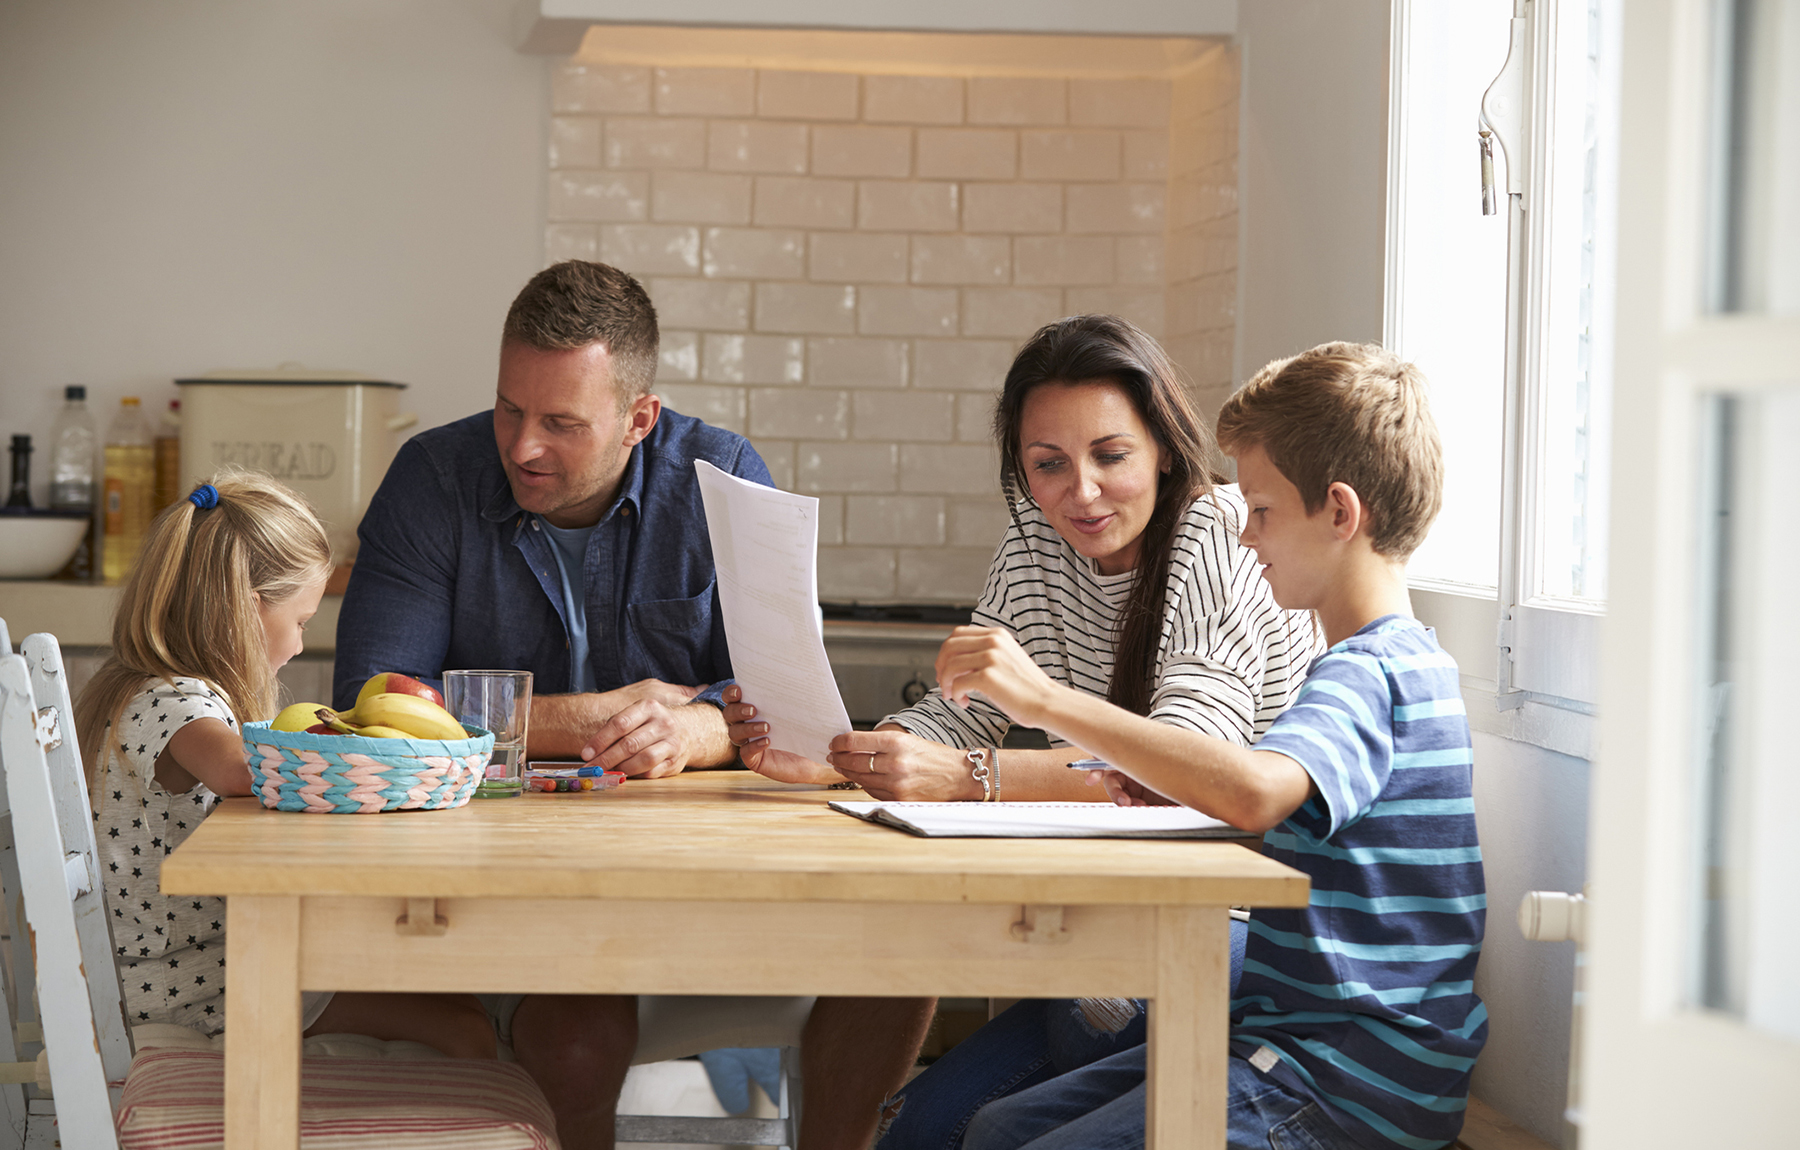 Building Trust With Parents as Small Group Leaders